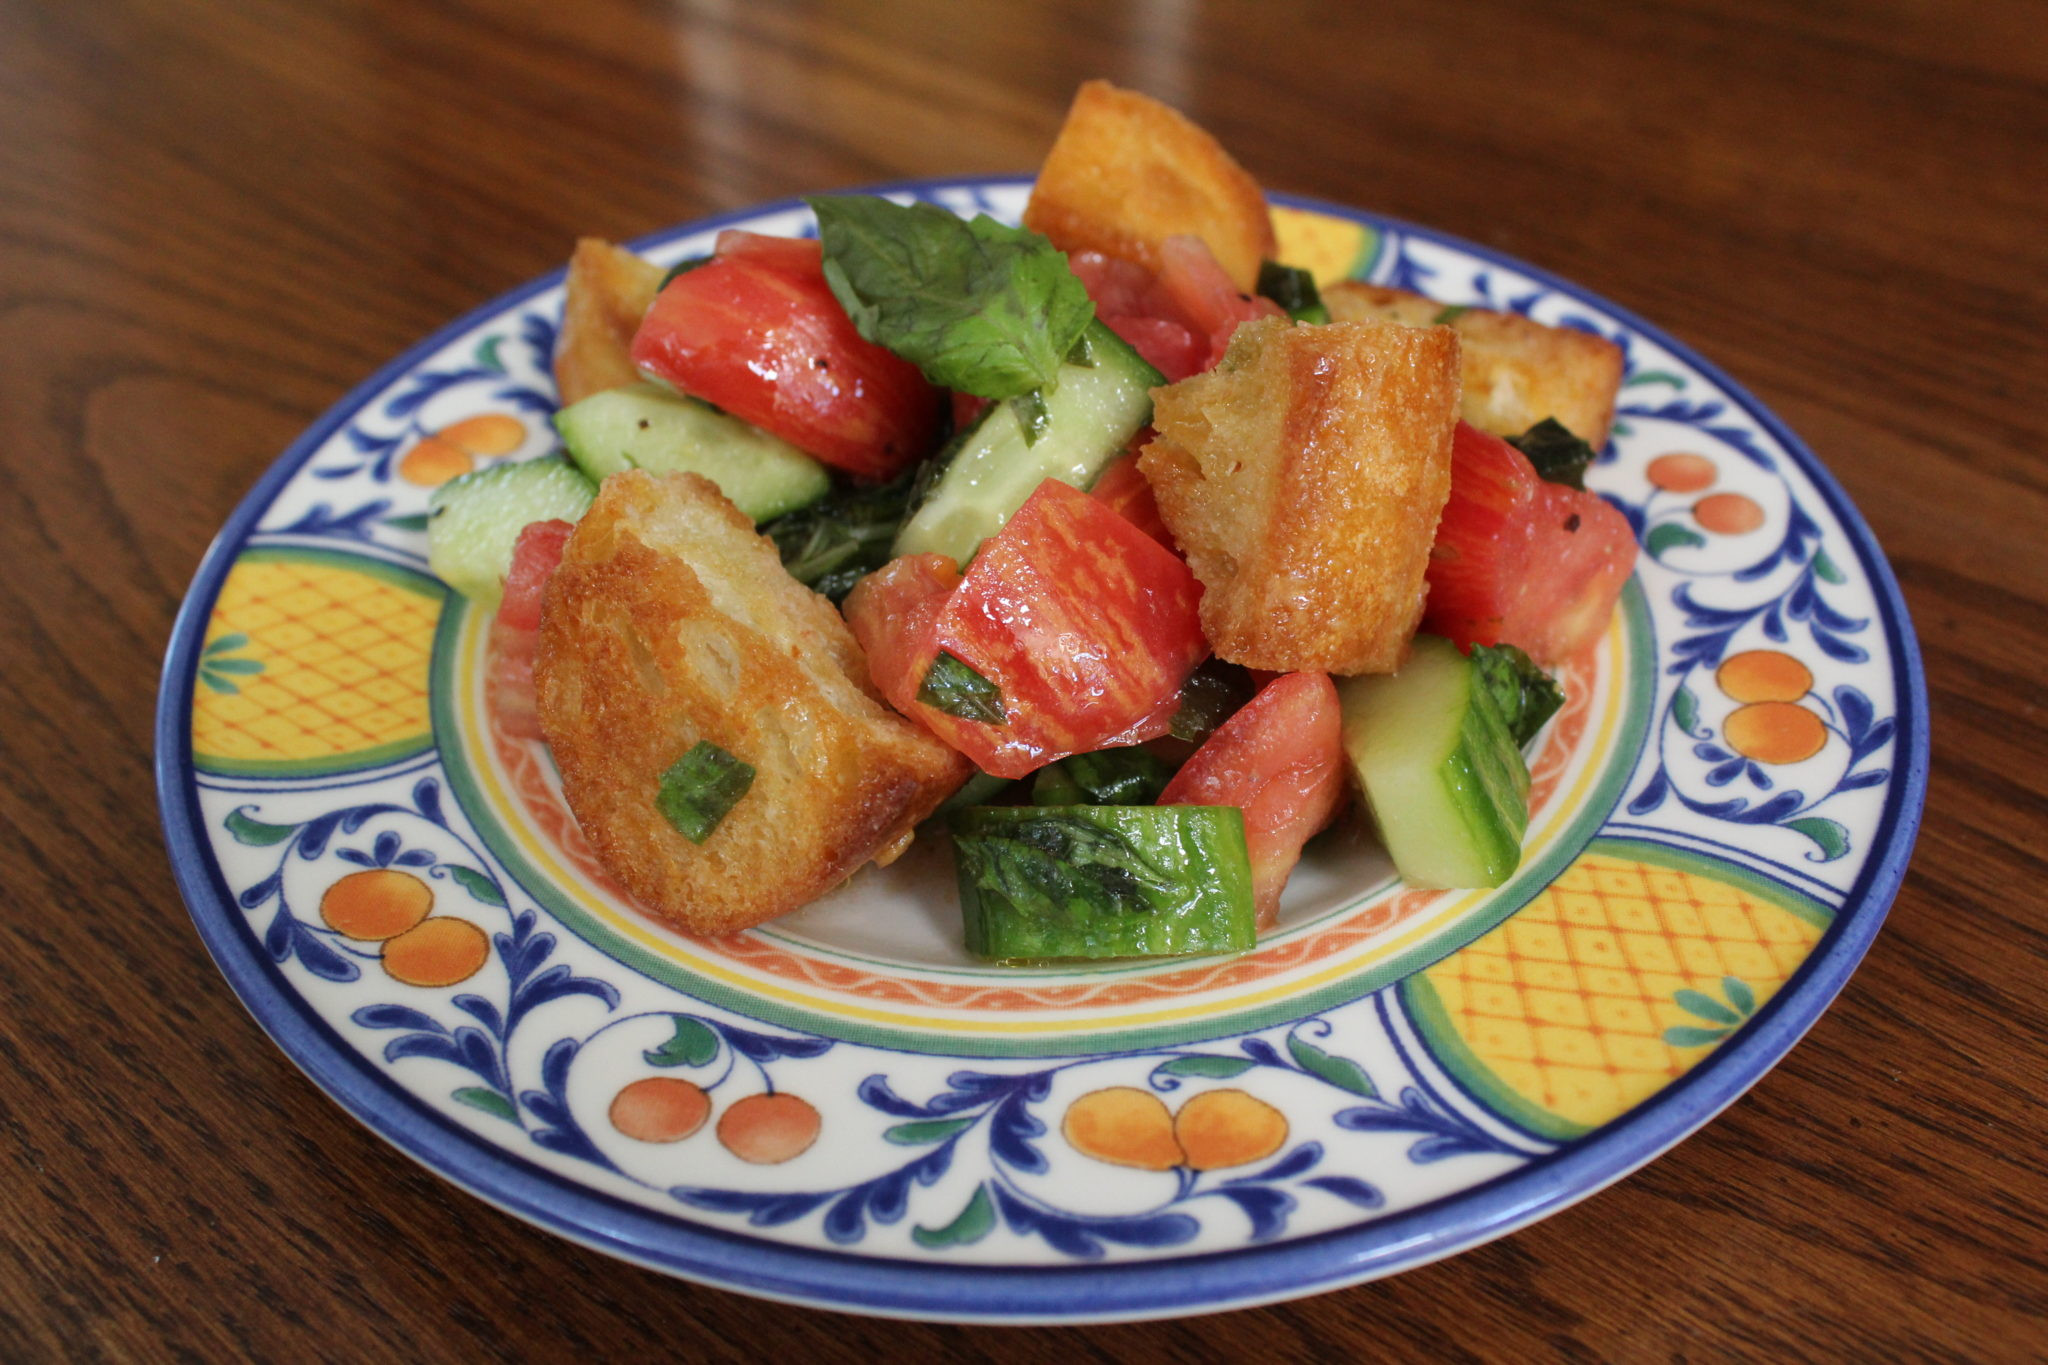 Healthy Bbq Side Dishes  8 Healthy BBQ Side Dishes To Make This Summer Rebecca